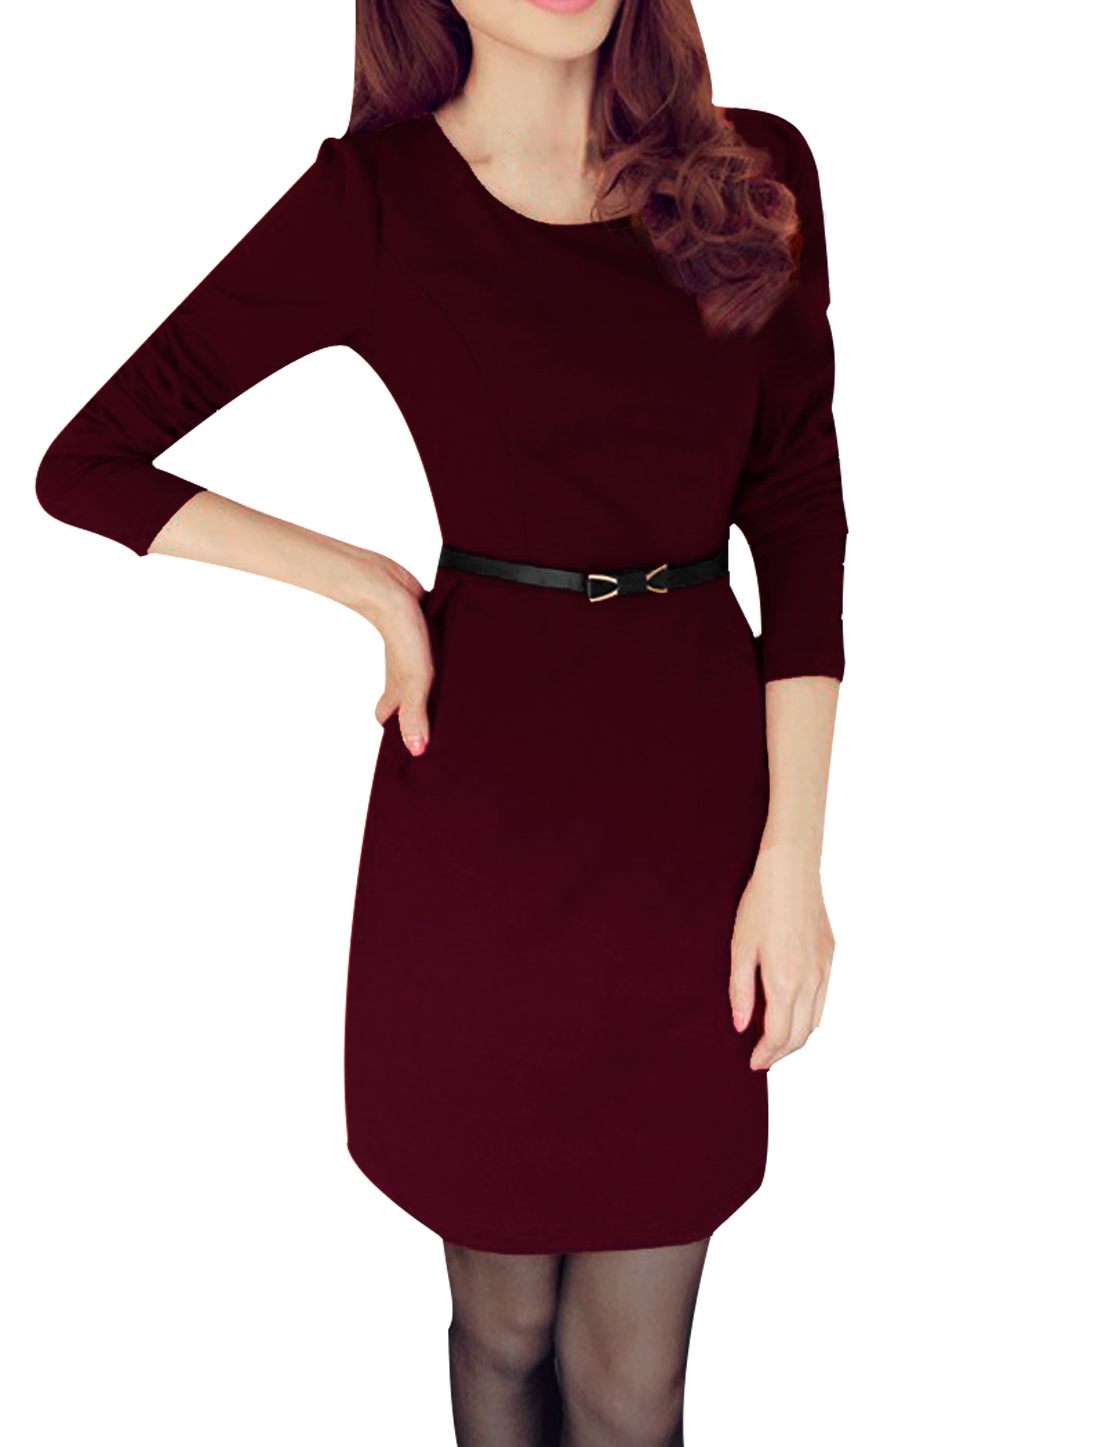 A-line Cutting Straight Wrap Back Long Sleeve Womenwear Purplish Red Dress S